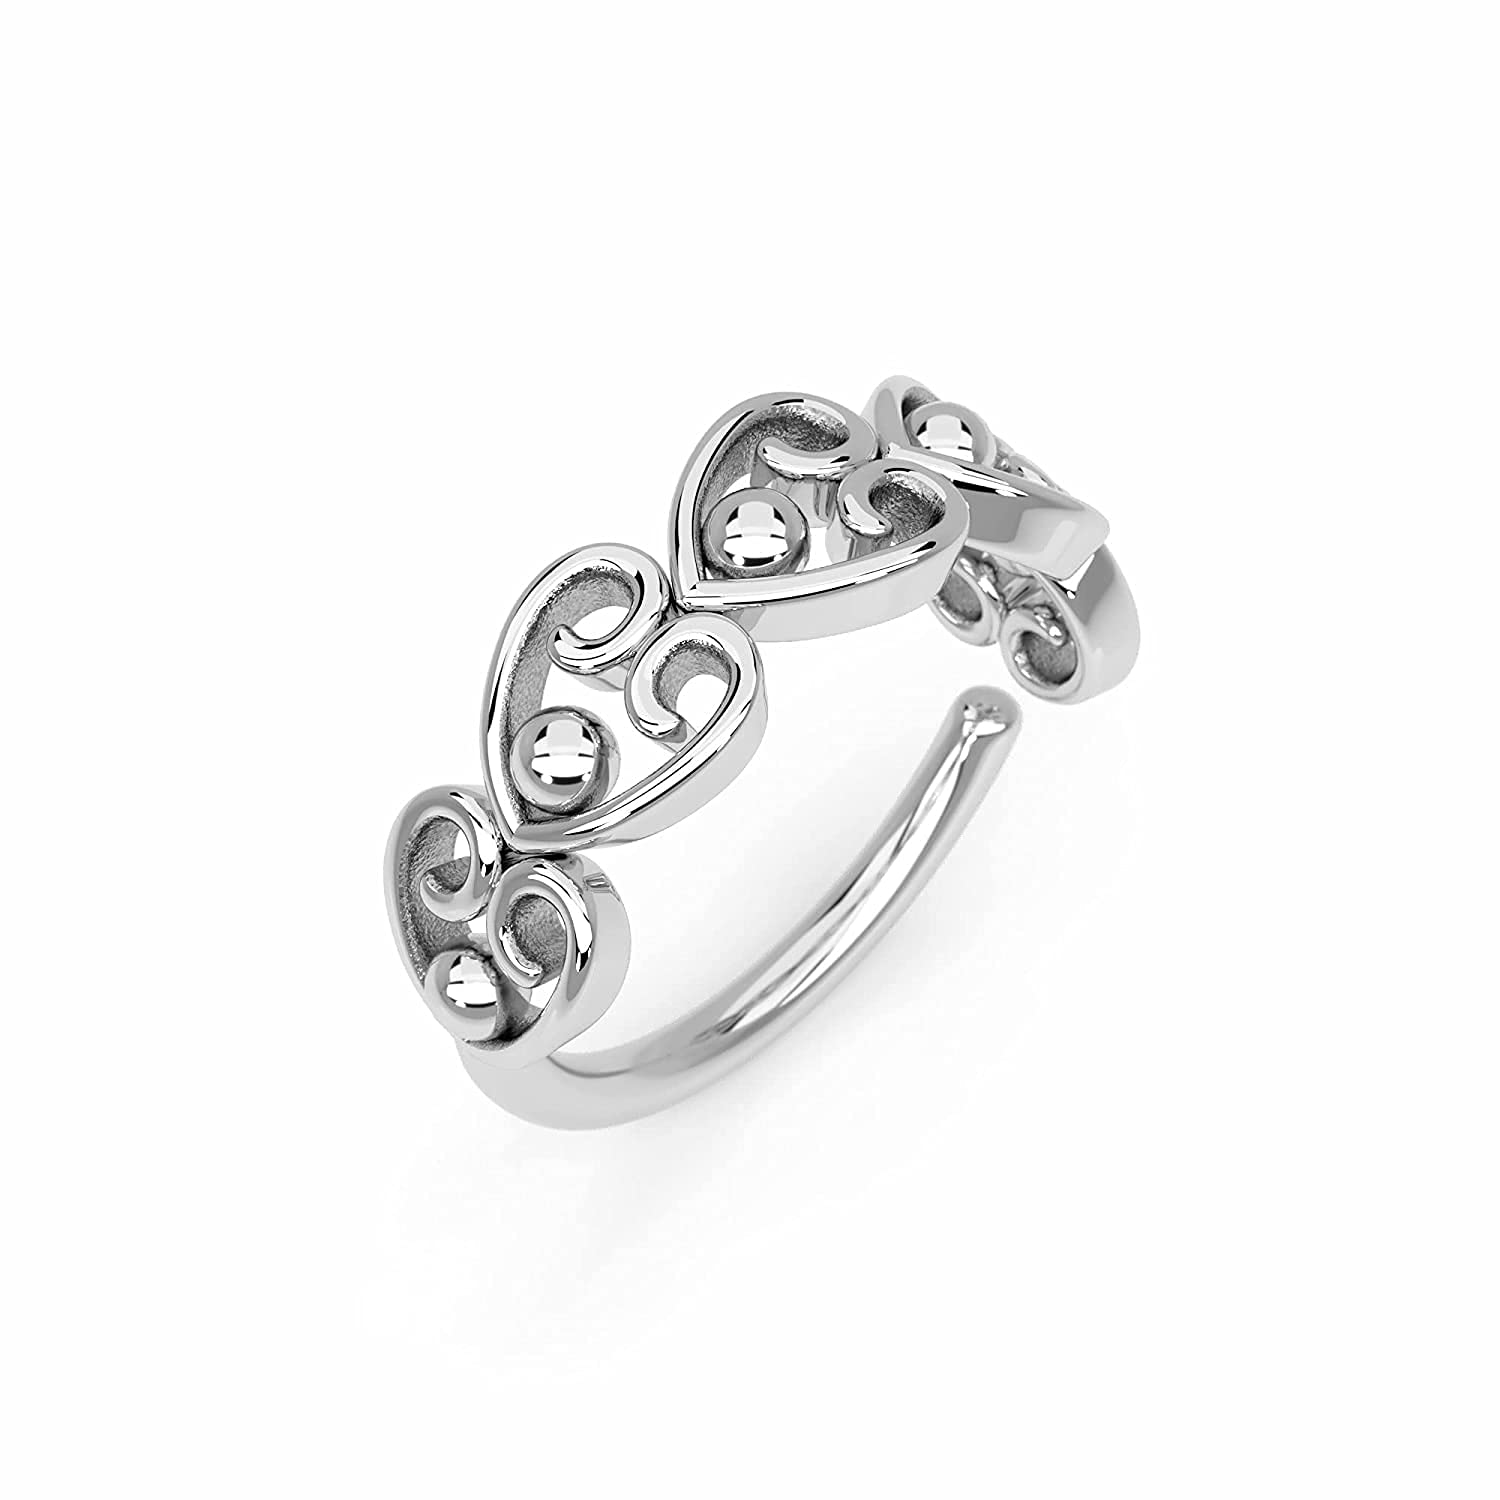 Nose Excellence Ring Sterling Silver Indian Unique Hoop P 5 popular Ethnic Boho